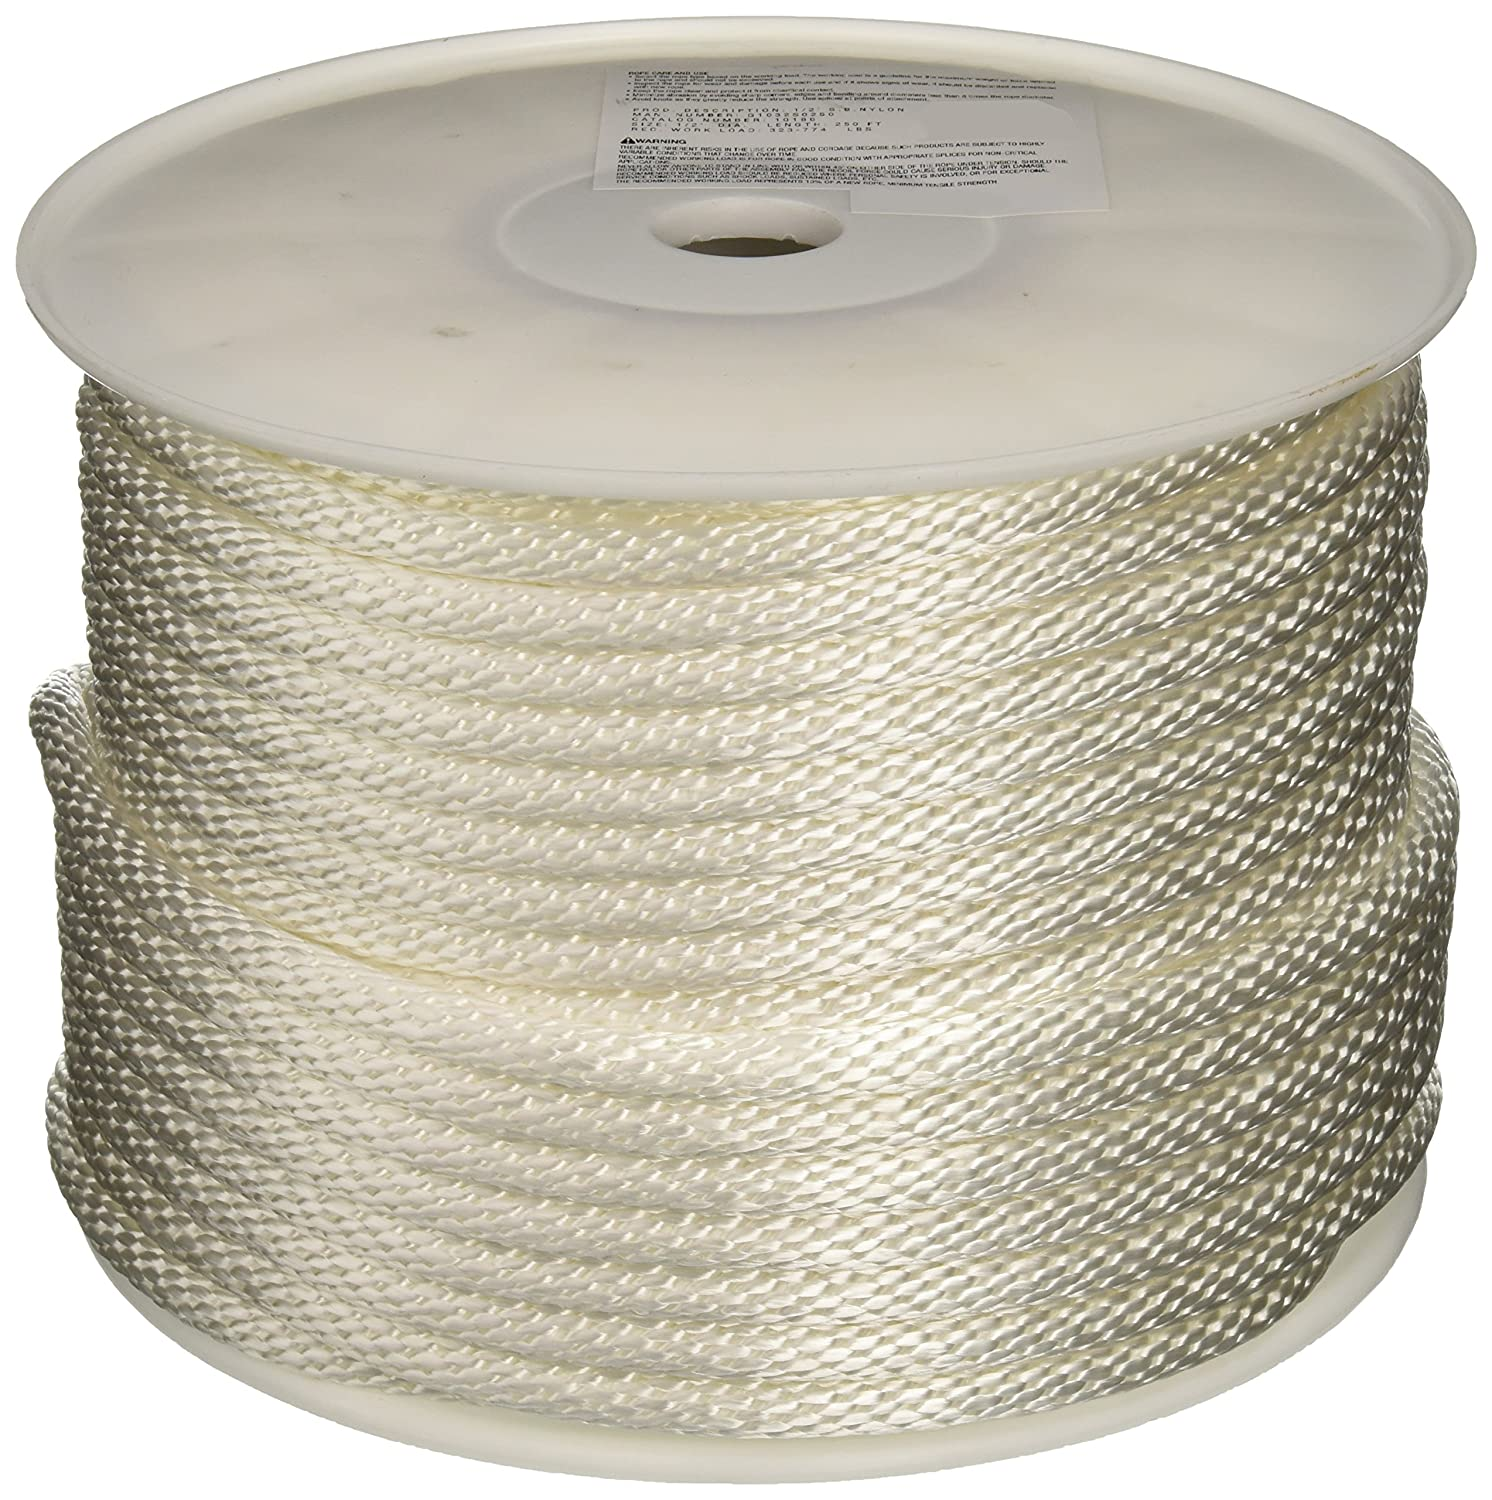 Wellington 10186 LEHIGH GROUP Rope 1//2-inch by 250-foot